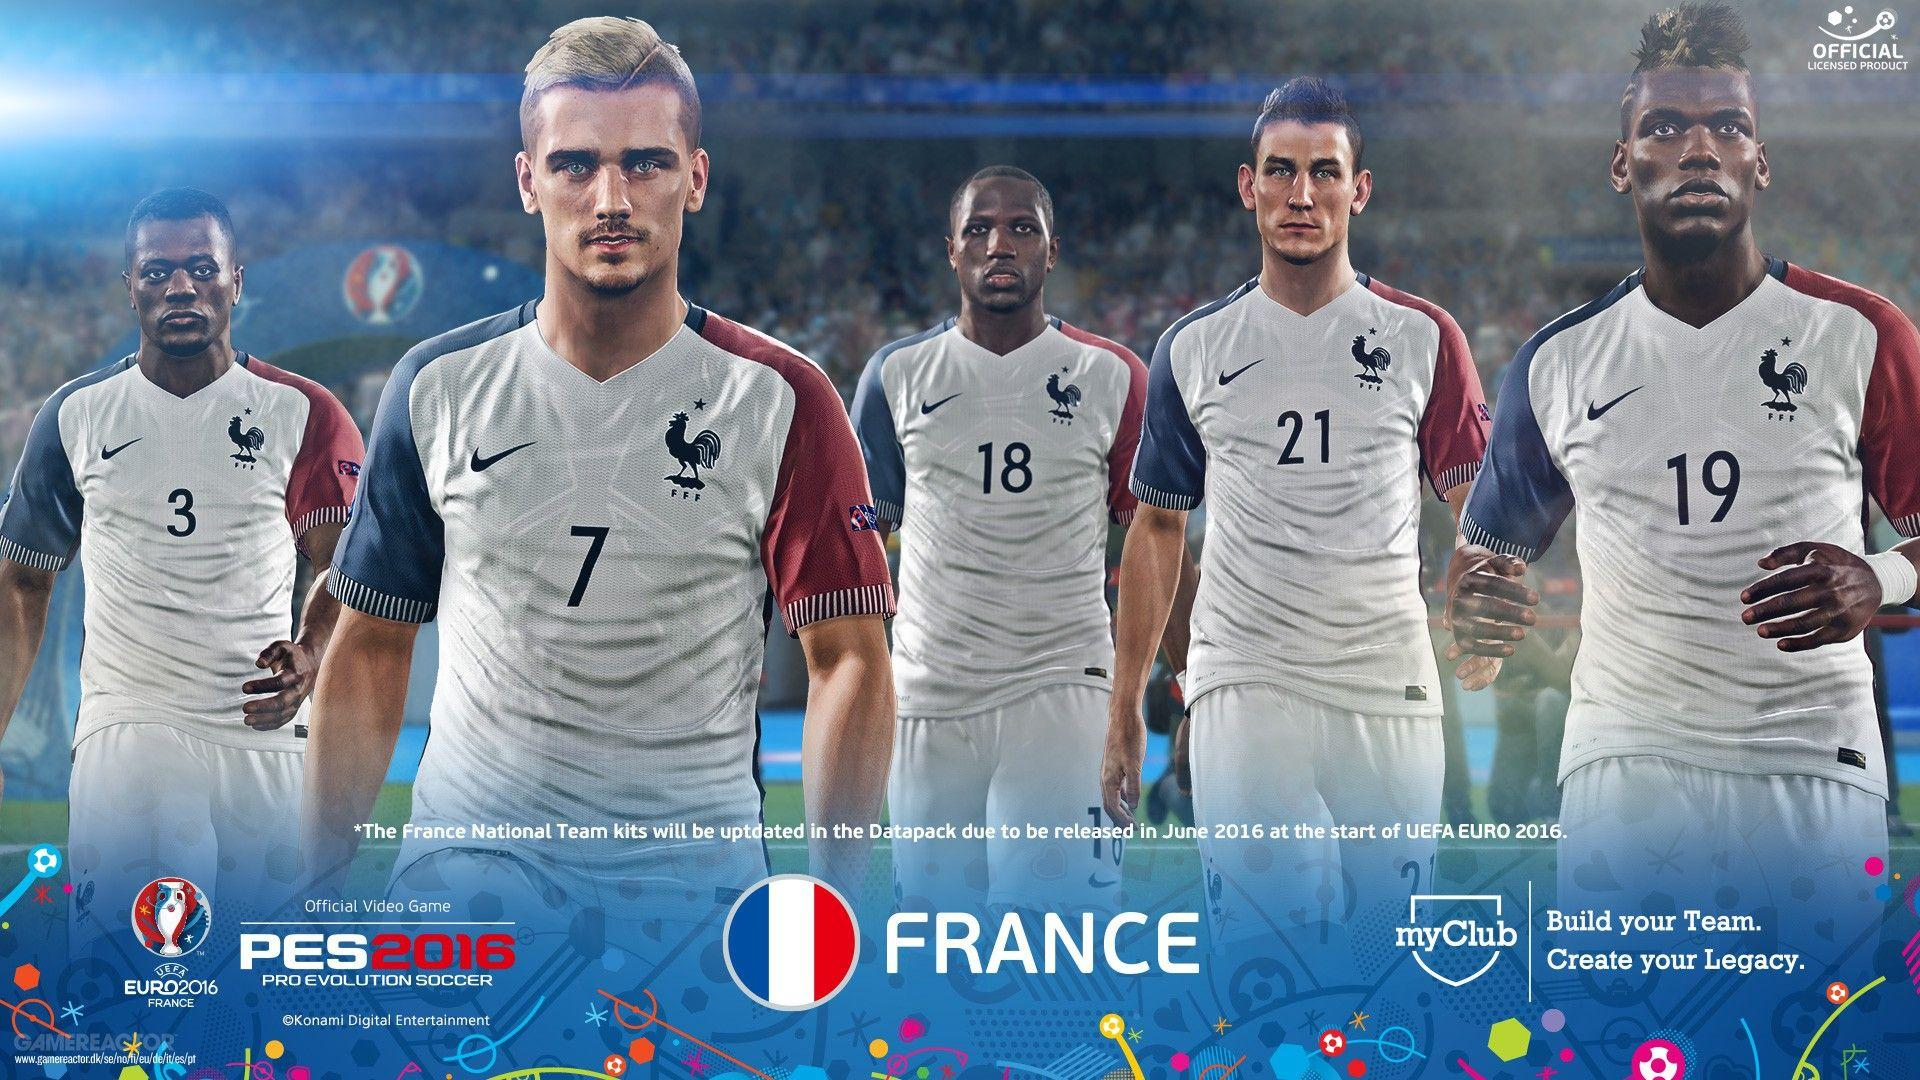 France National Football Team 2019 Wallpapers - Wallpaper Cave